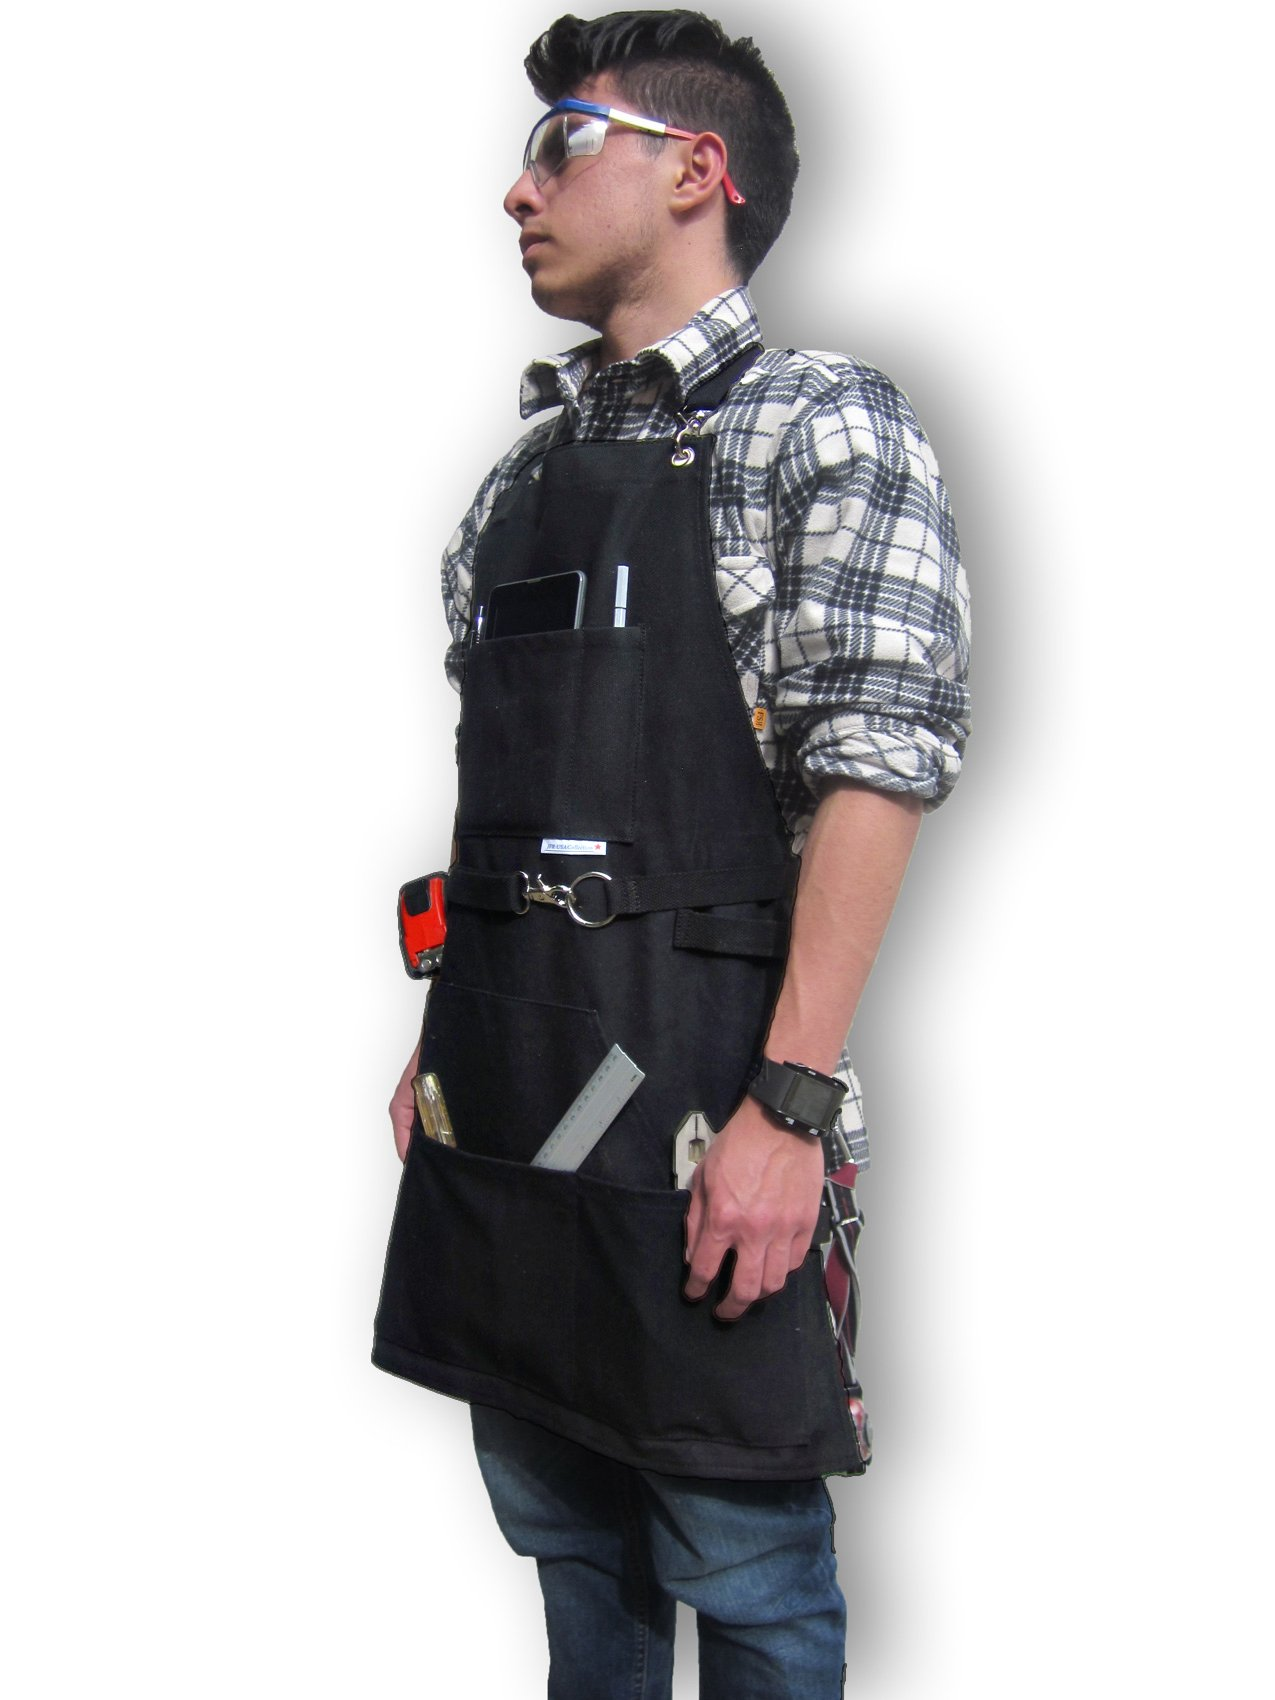 BEST CHOICE Waterproof All-Purpose Bib Apron - Workshop Waxed Canvas - 7x Pockets & 2 Shackles for Accessories & Tools - Totally Adjustable Neck and Waist Strap - Size S-XXL for Men & Women.